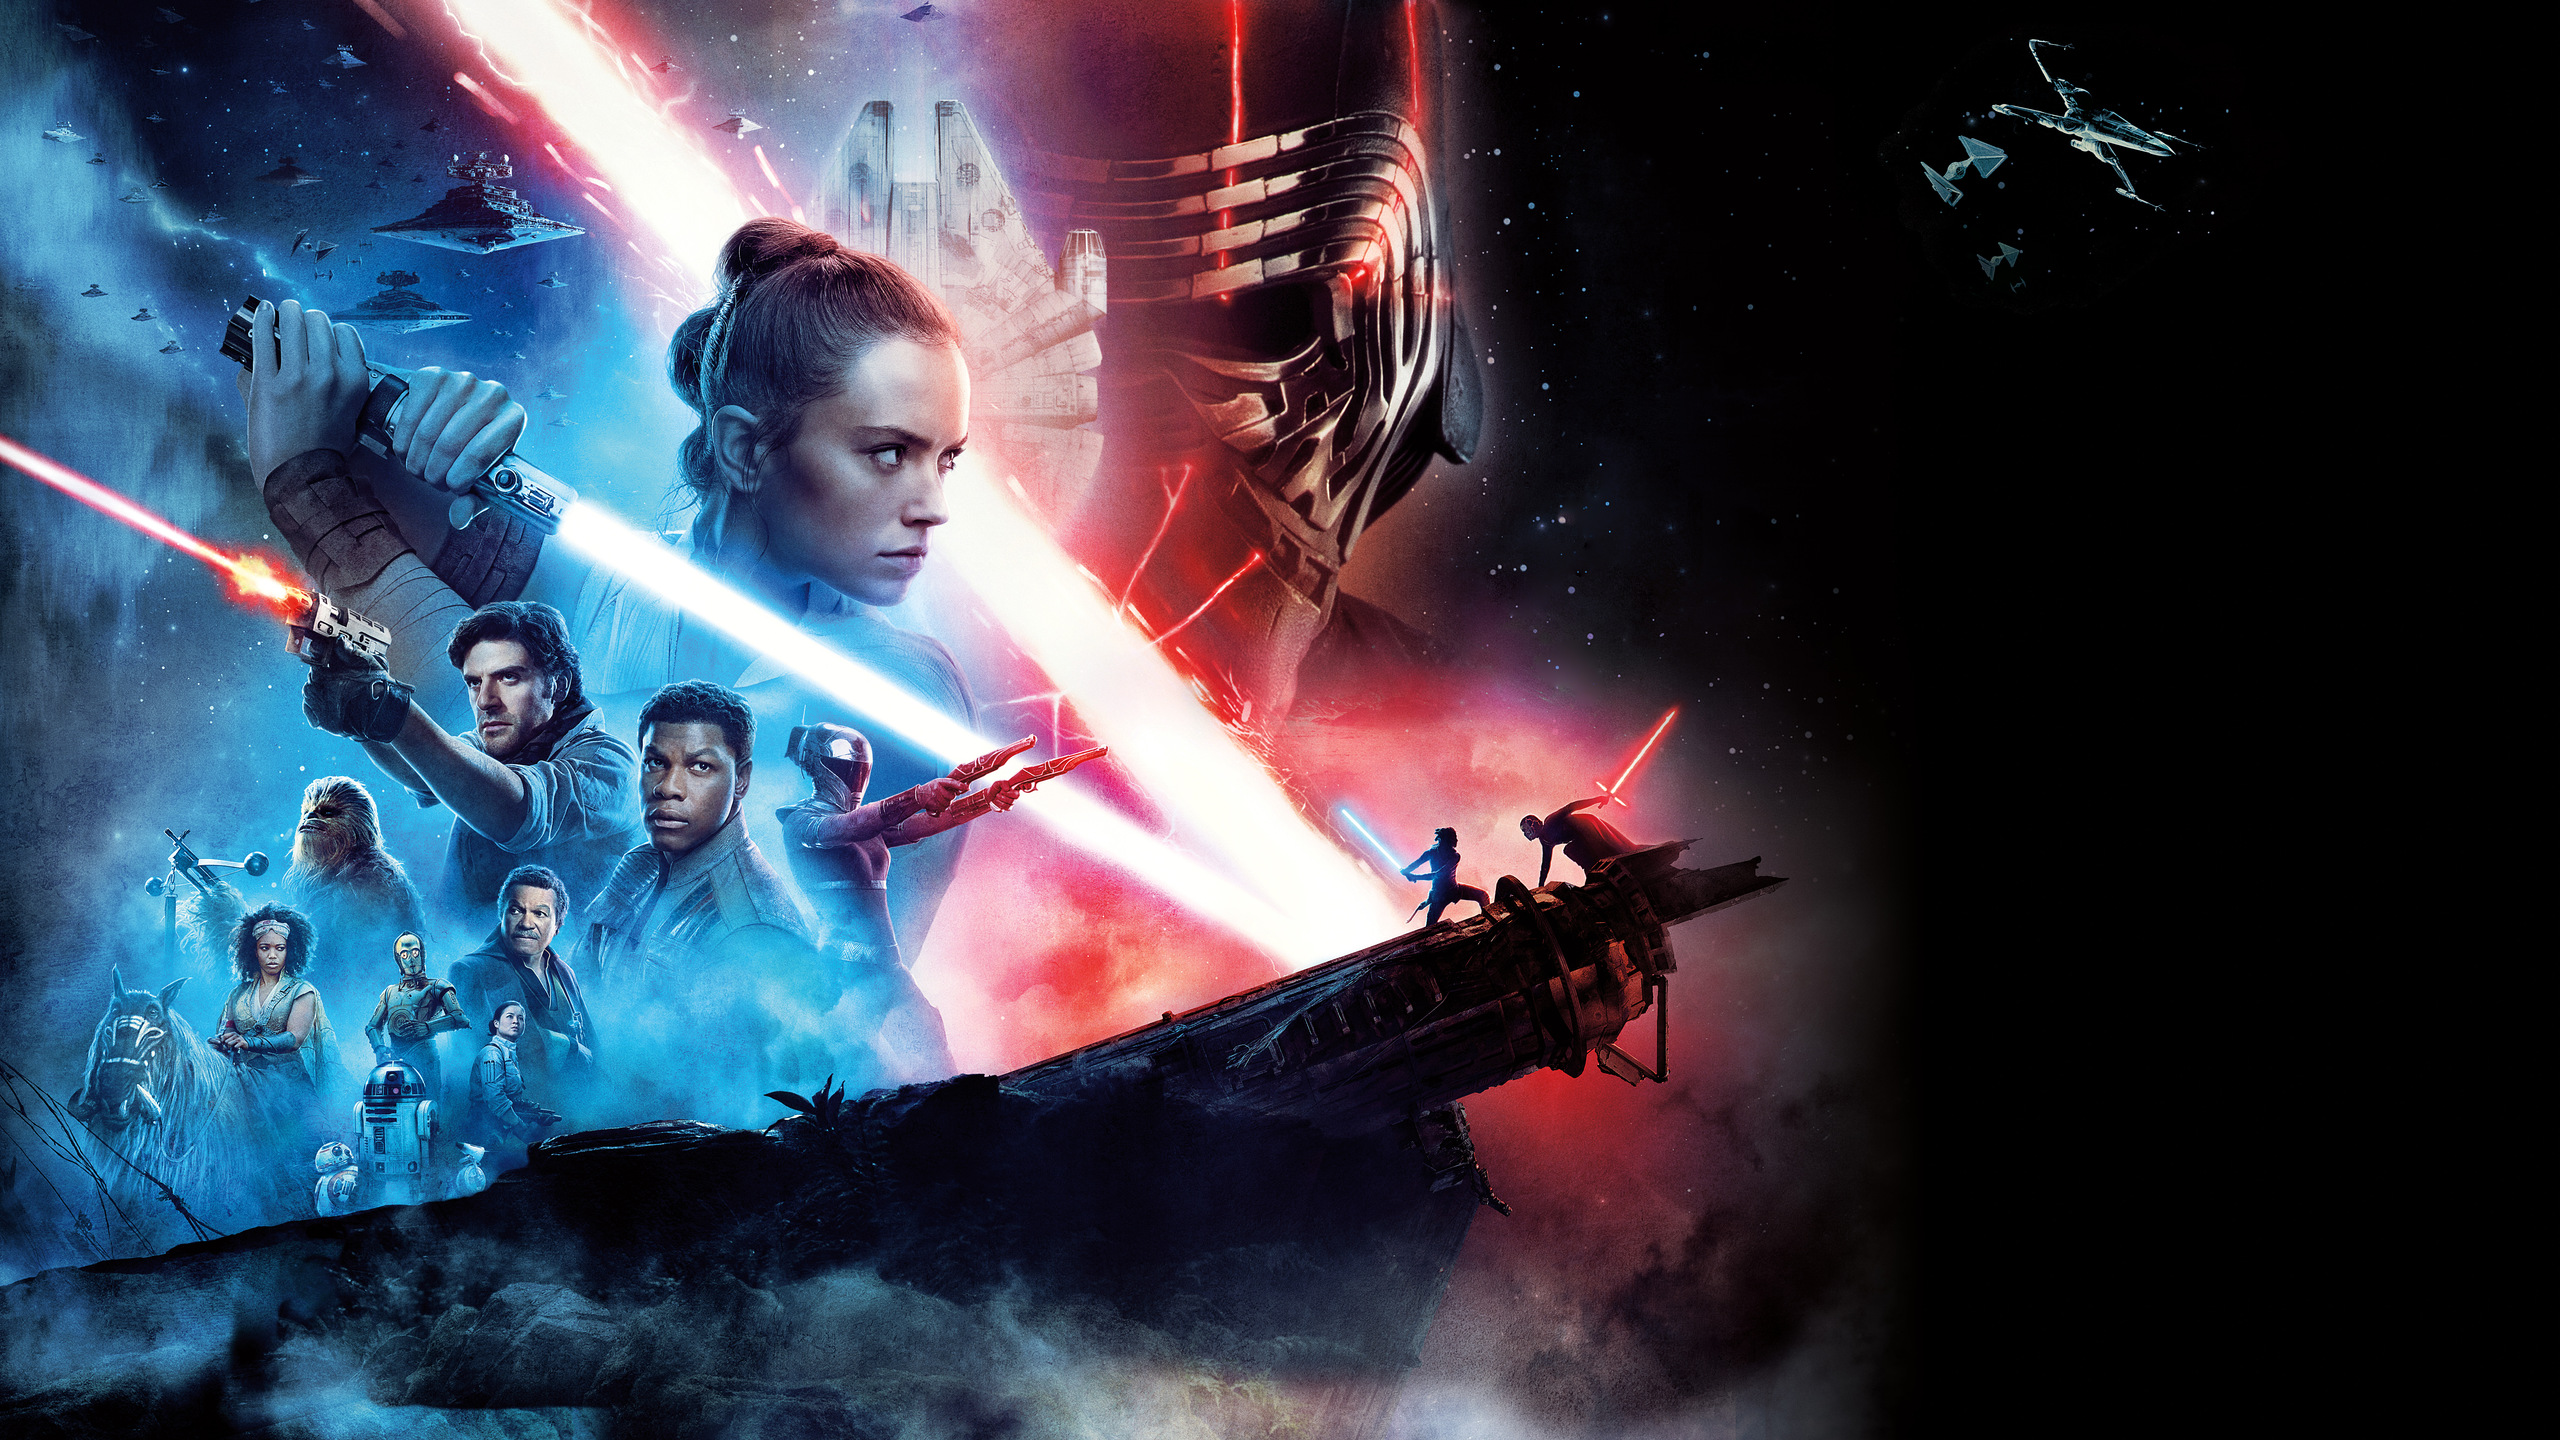 2560x1440 Star Wars The Rise Of Skywalker 12k 1440p Resolution Hd 4k Wallpapers Images Backgrounds Photos And Pictures